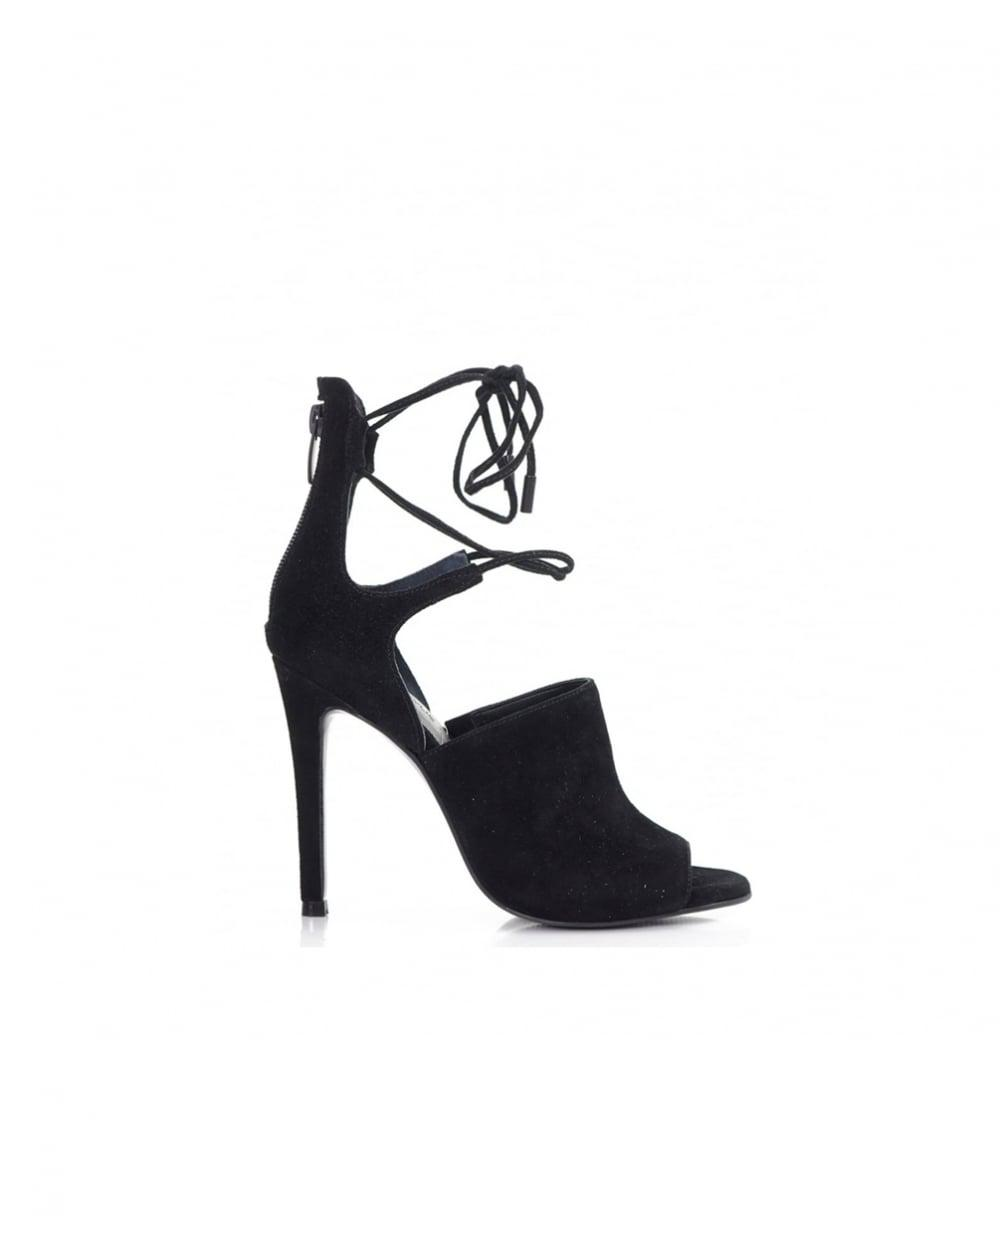 72b1e29b4fb Lyst - Kendall + Kylie Lace Ankle Suede Sandals in Black